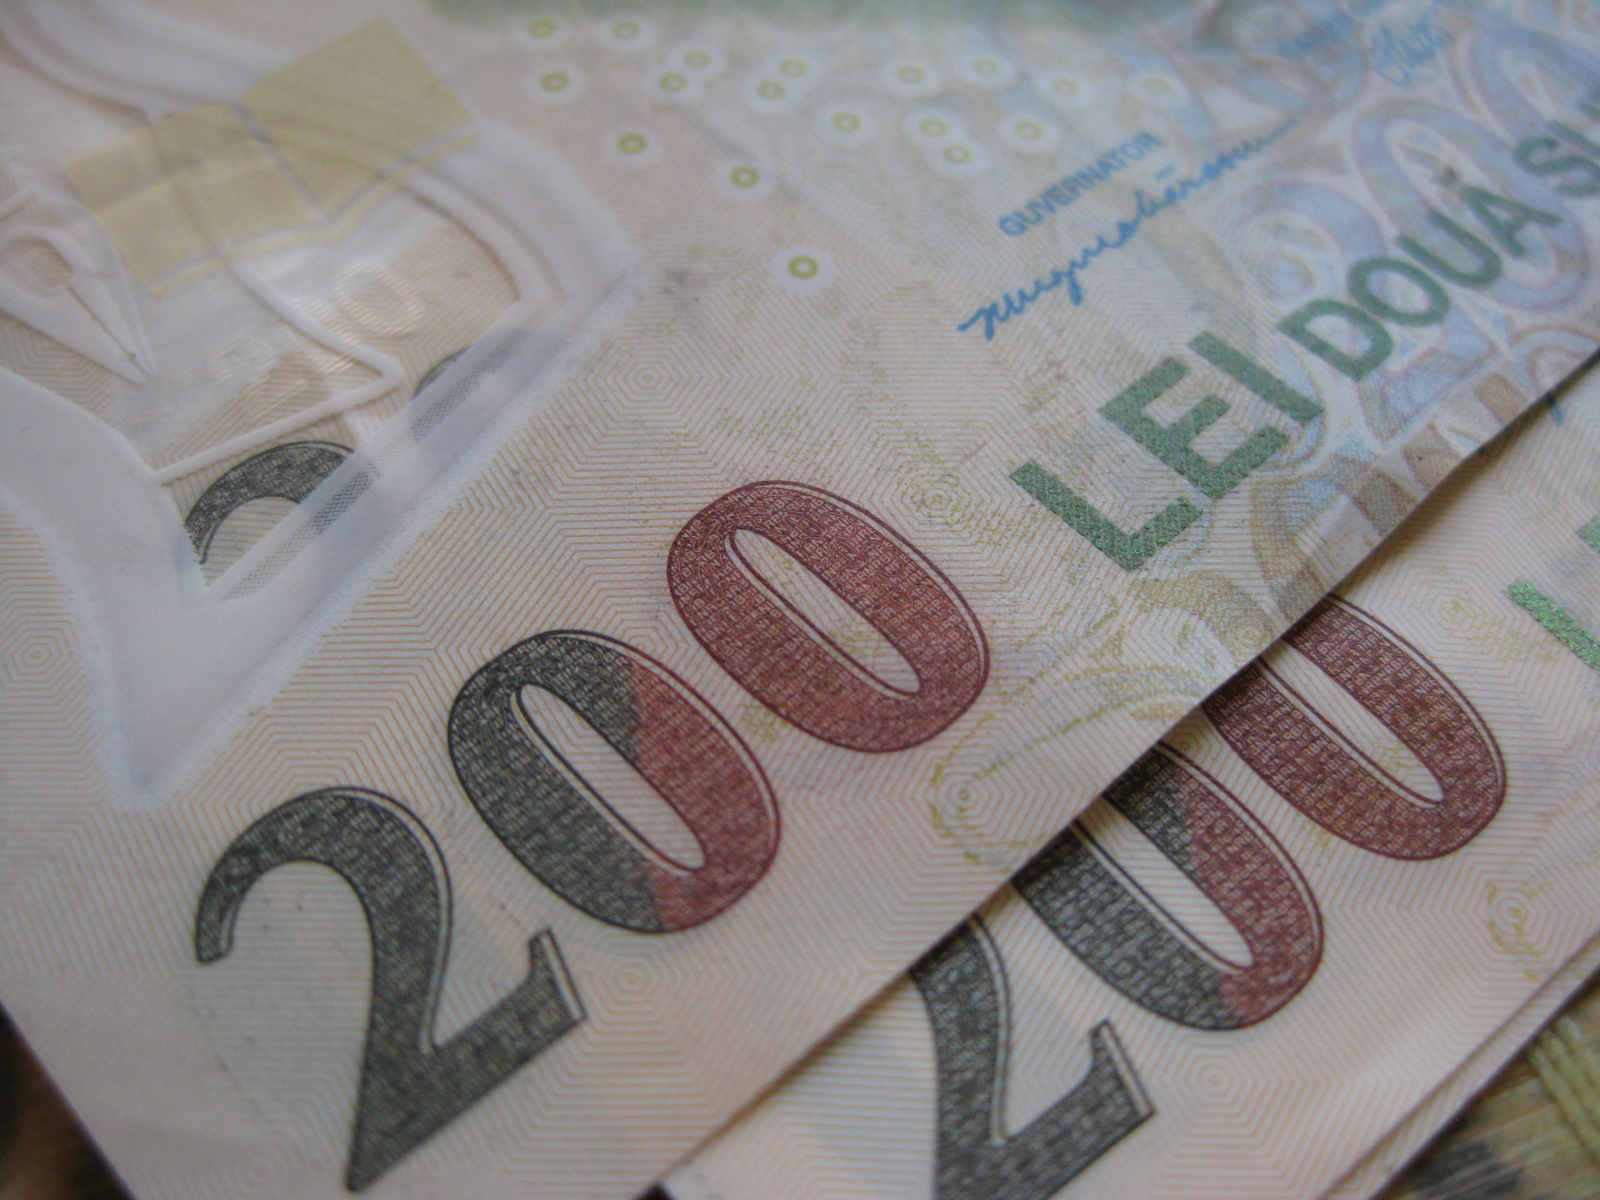 Romanian leu falls amidst protests against govt's push to reverse anti-graft fight